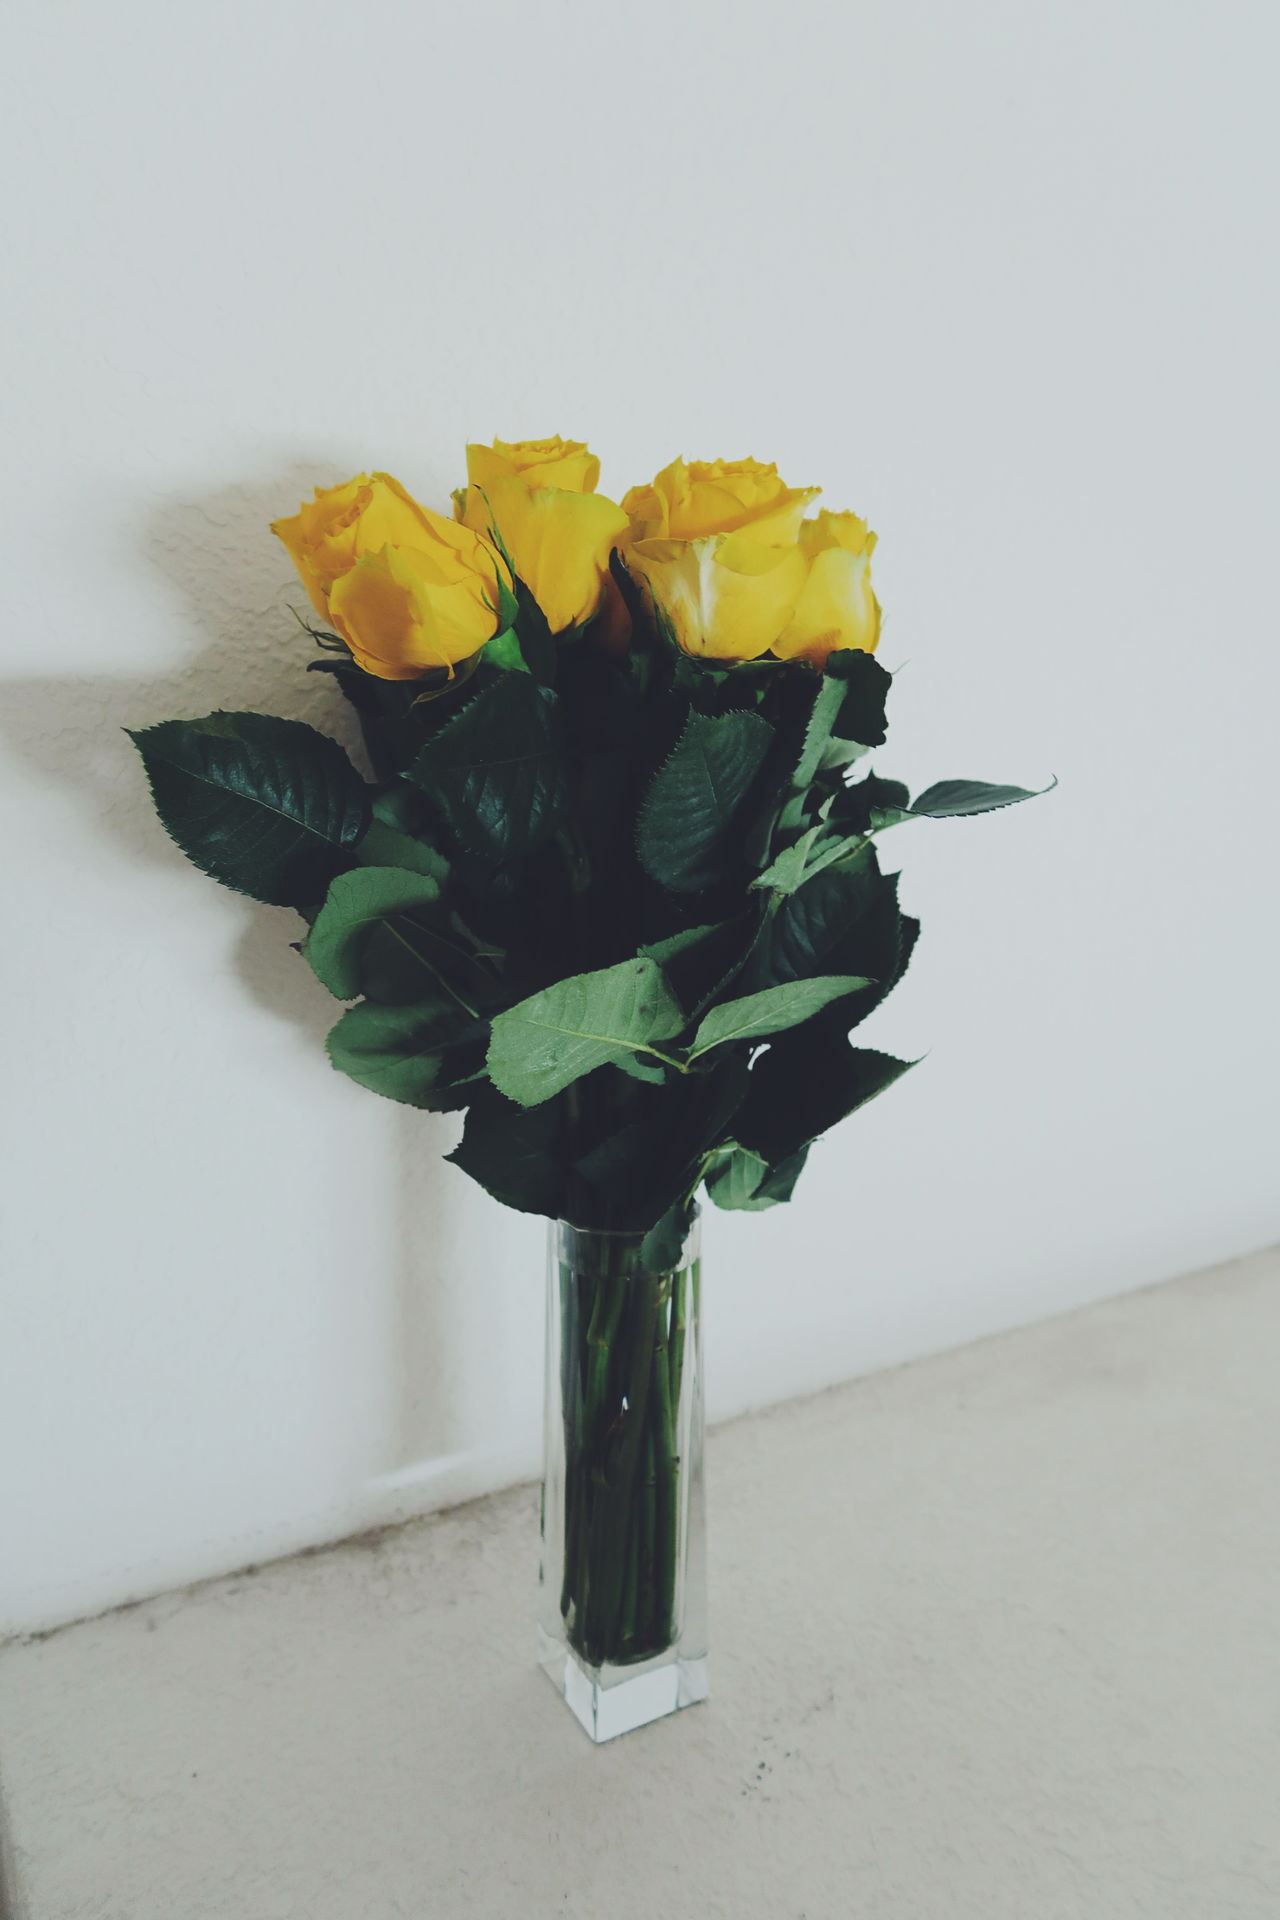 Flower Indoors  Vase Leaf No People Plant Fragility Beauty In Nature Nature Freshness Day White Background Flower Head Close-up Yellow Flowers Yellow Rose Yellow Roses Yellow